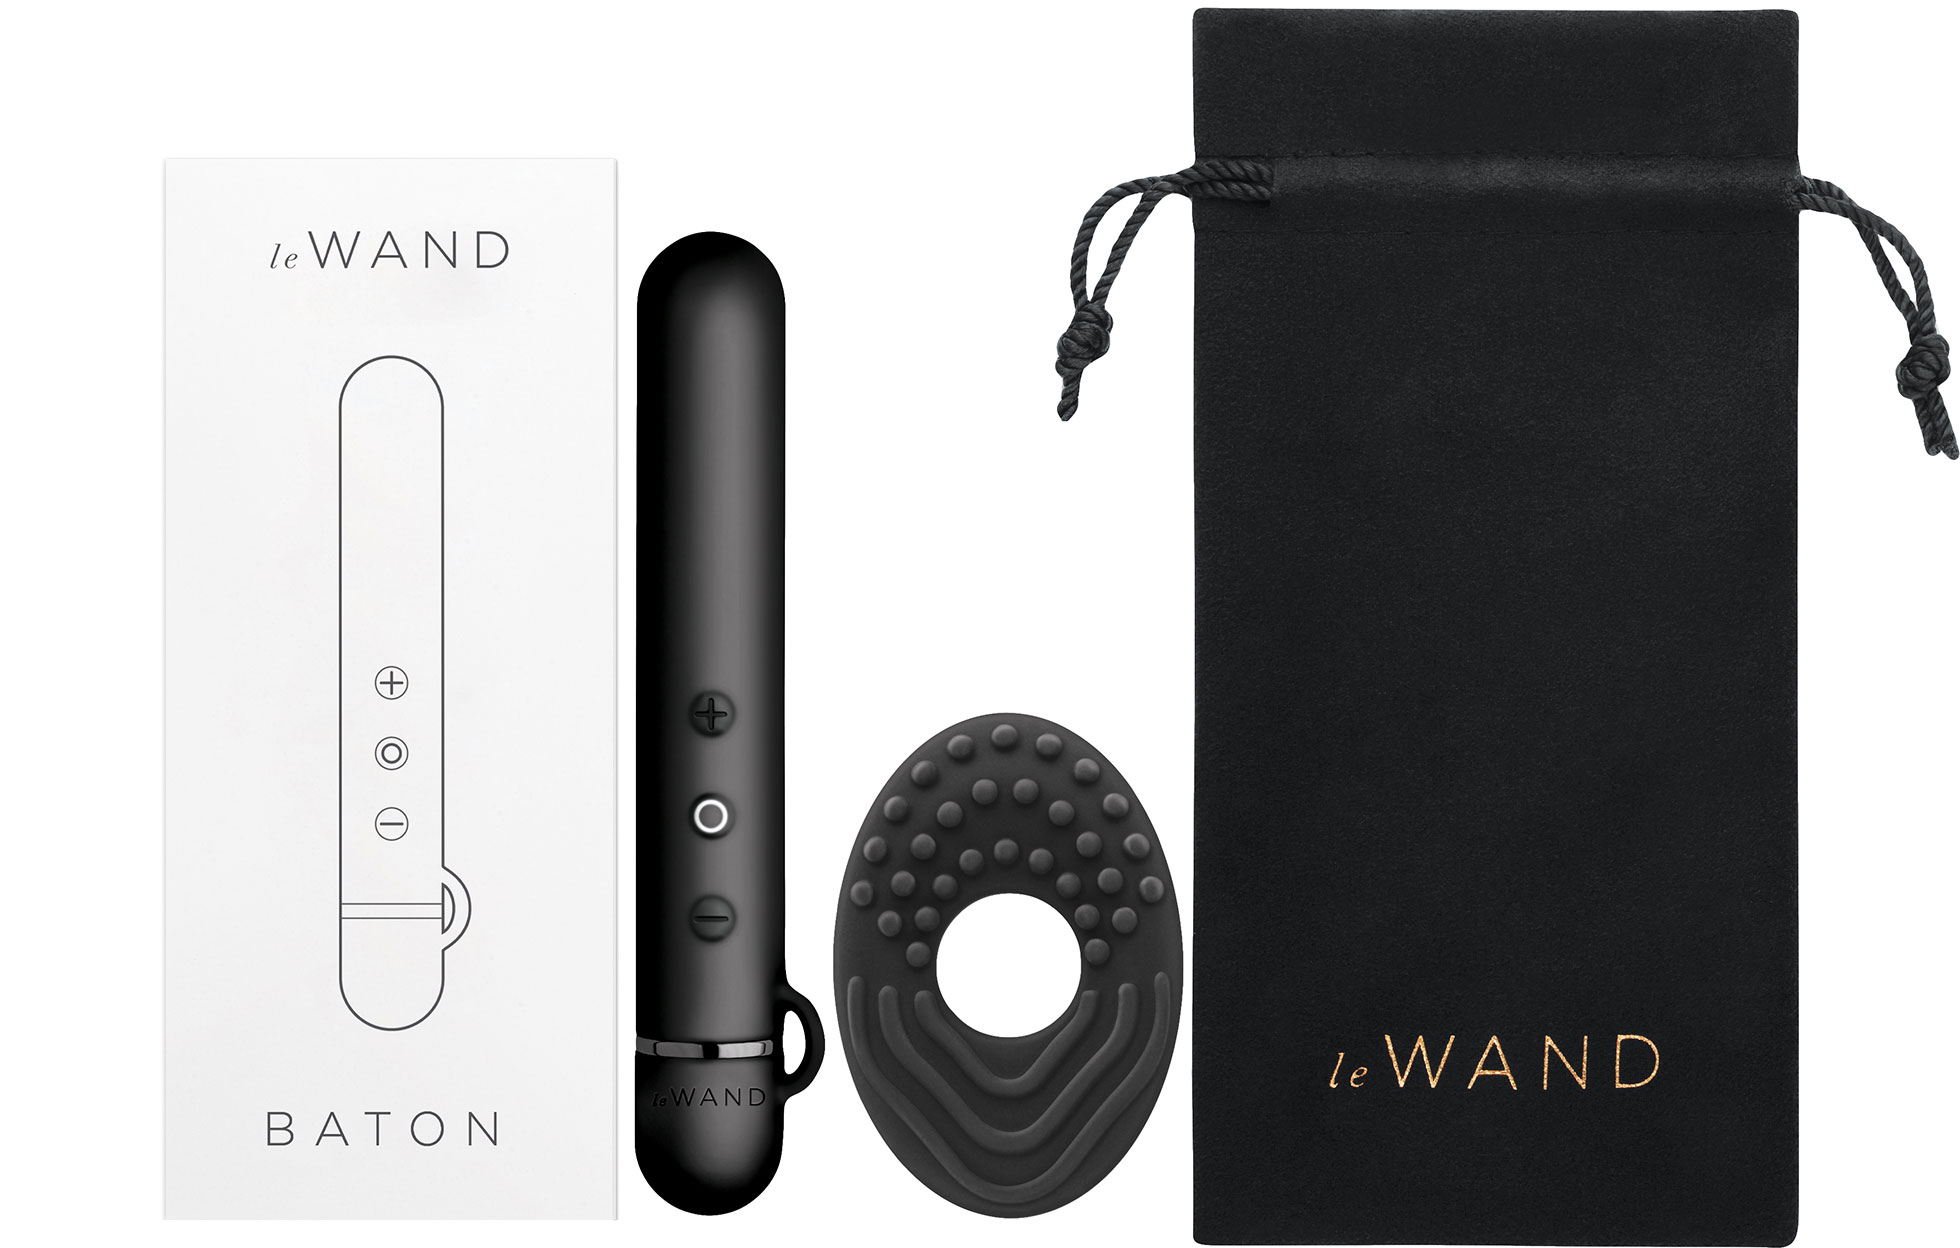 Le Wand Baton Powerful Waterproof Rechargeable Vibrator - Box Contents